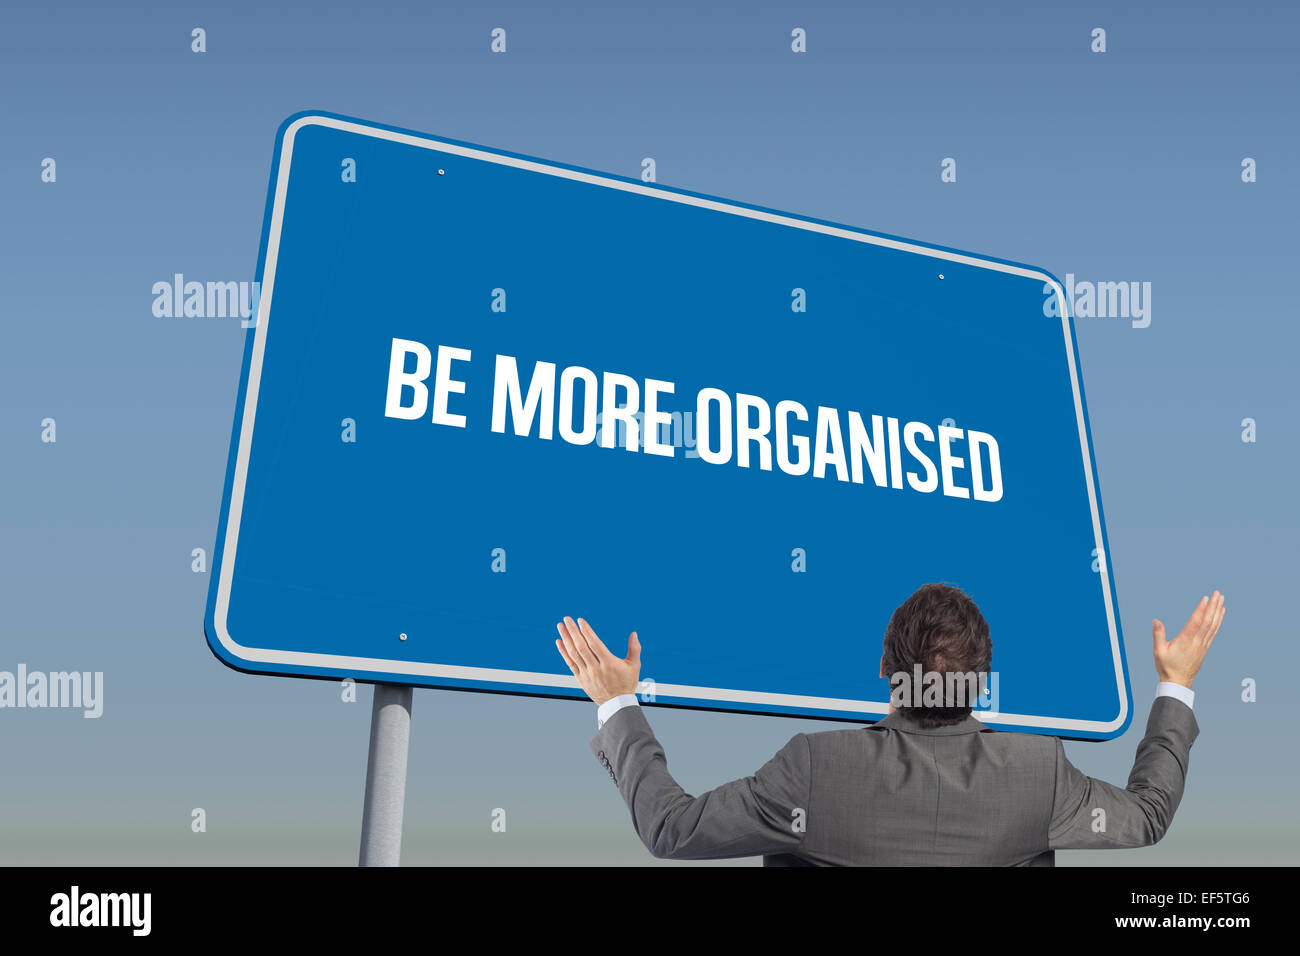 Be more organised against blue sky - Stock Image